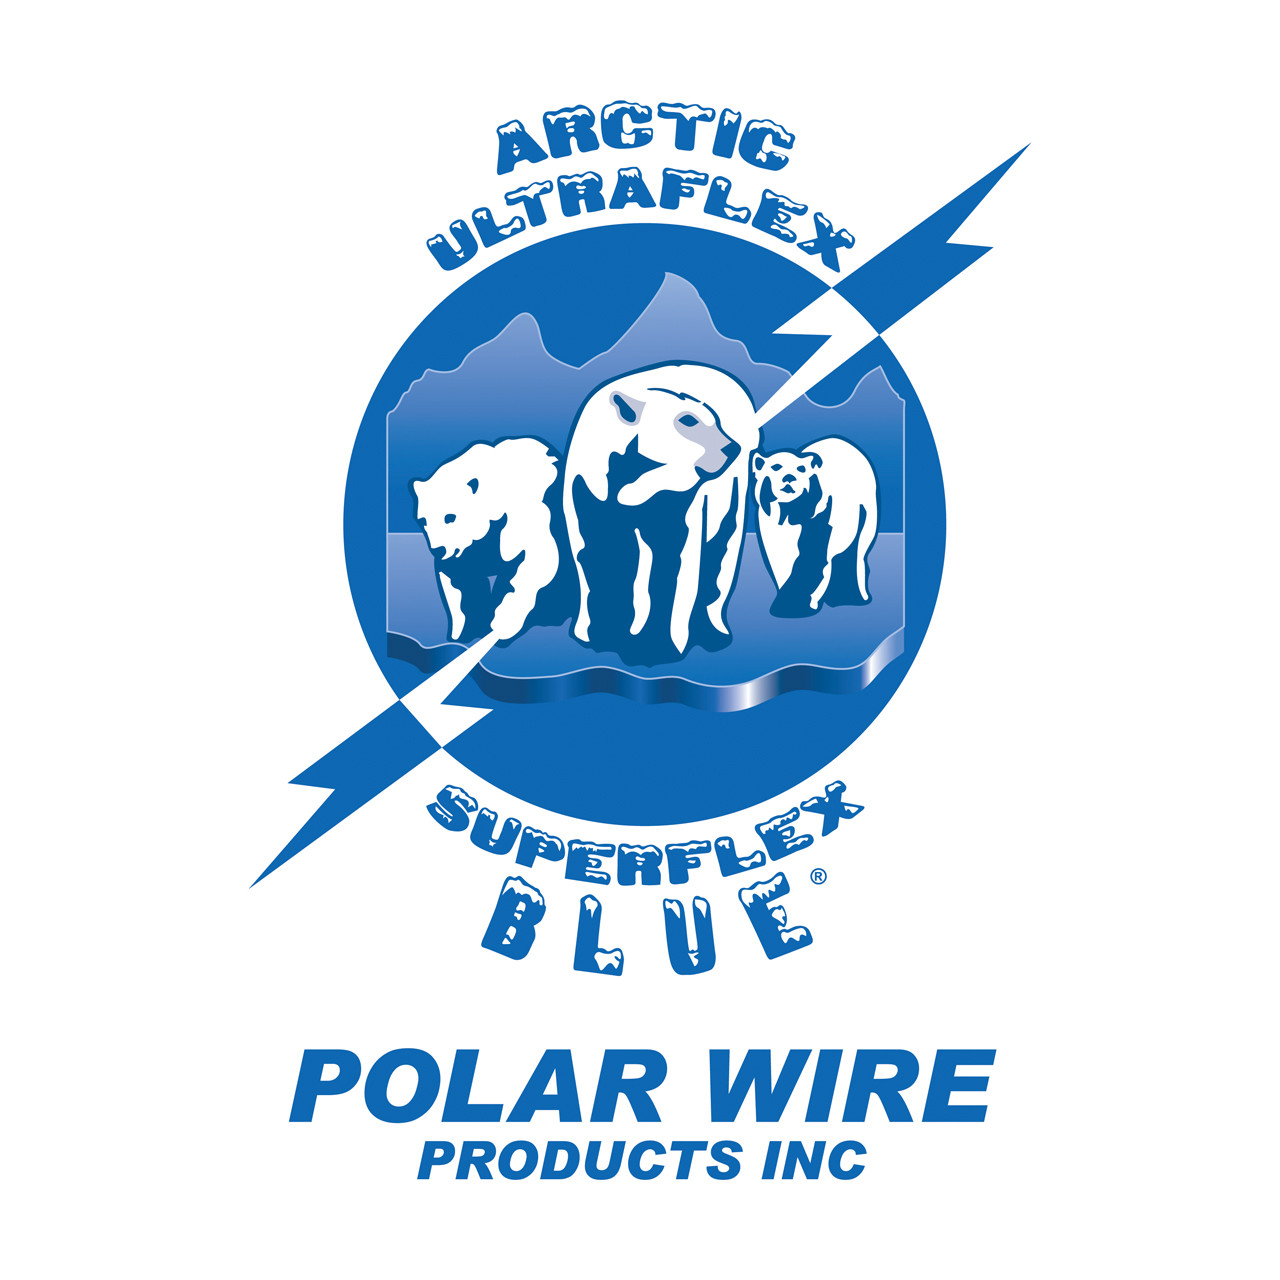 Arctic Ultraflex Blue'''_''_''Î''Ç'ö'''_'ÇÎ⒑'''¢ and Arctic Superflex Blue'''_''_''Î''Ç'ö'''_'ÇÎ⒑'''¢ 100% copper Class K fine stranded cold weather flexible wire and cable is manufactured exclusively by Polar Wire Products. Made in the USA